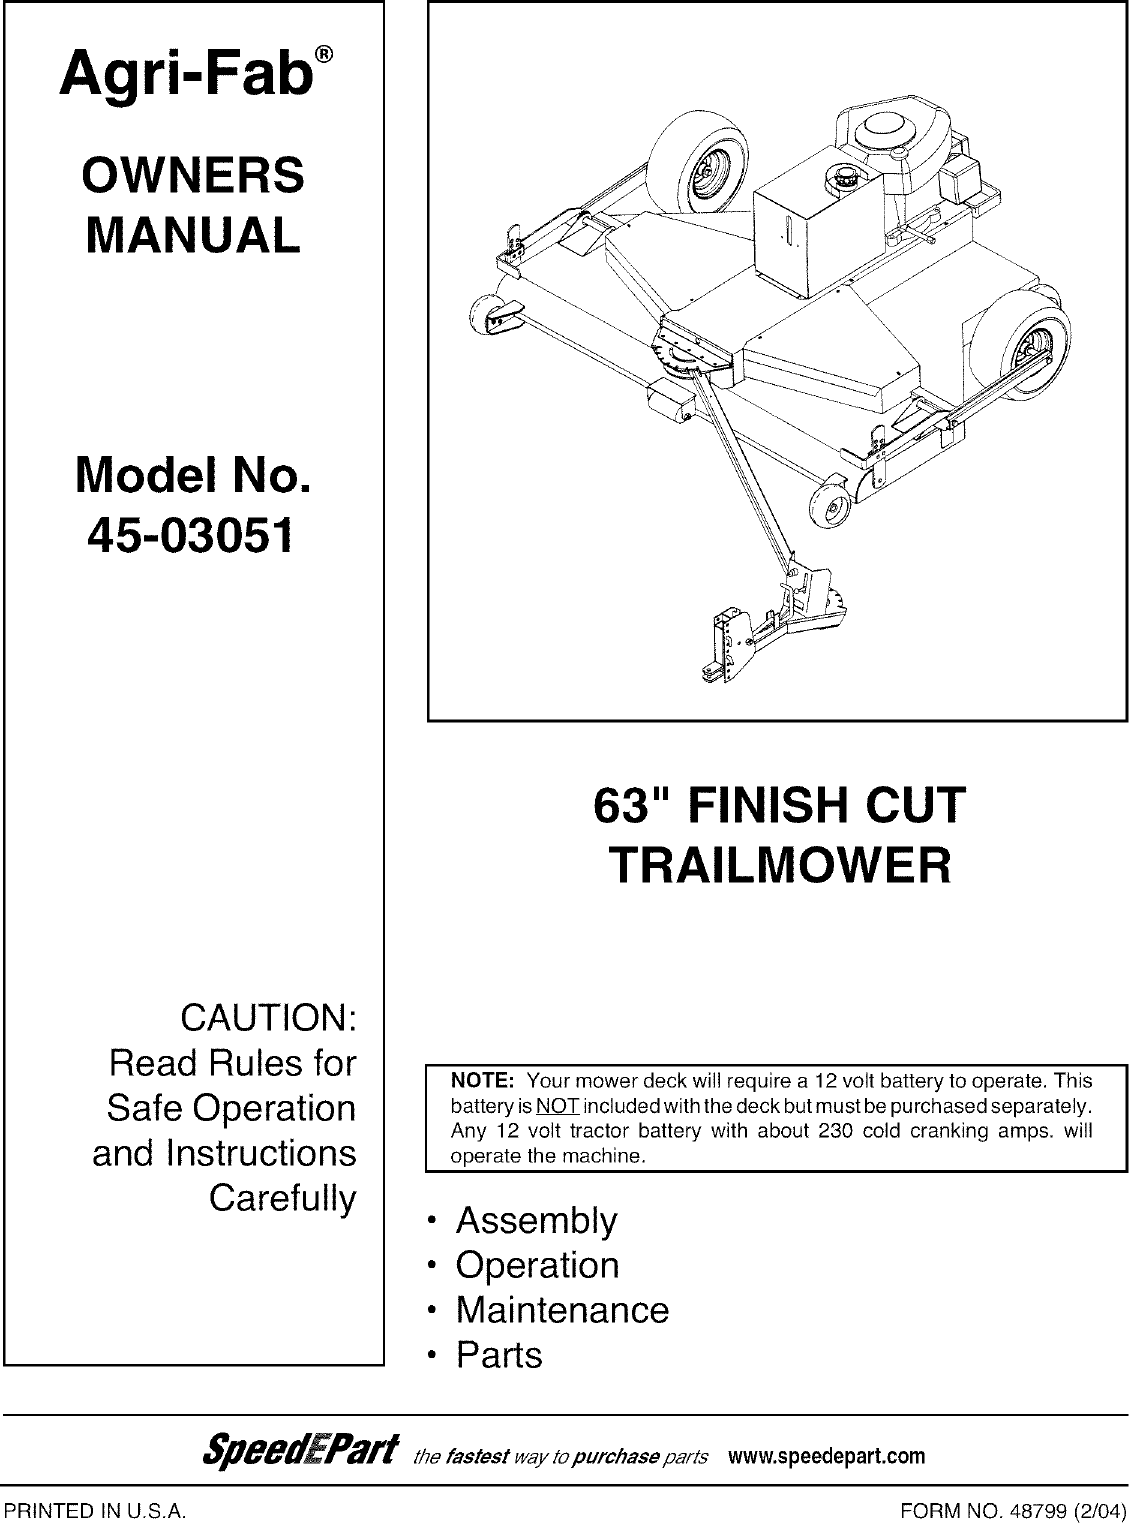 Converting To 12 Volts Honda Trail Manual Guide